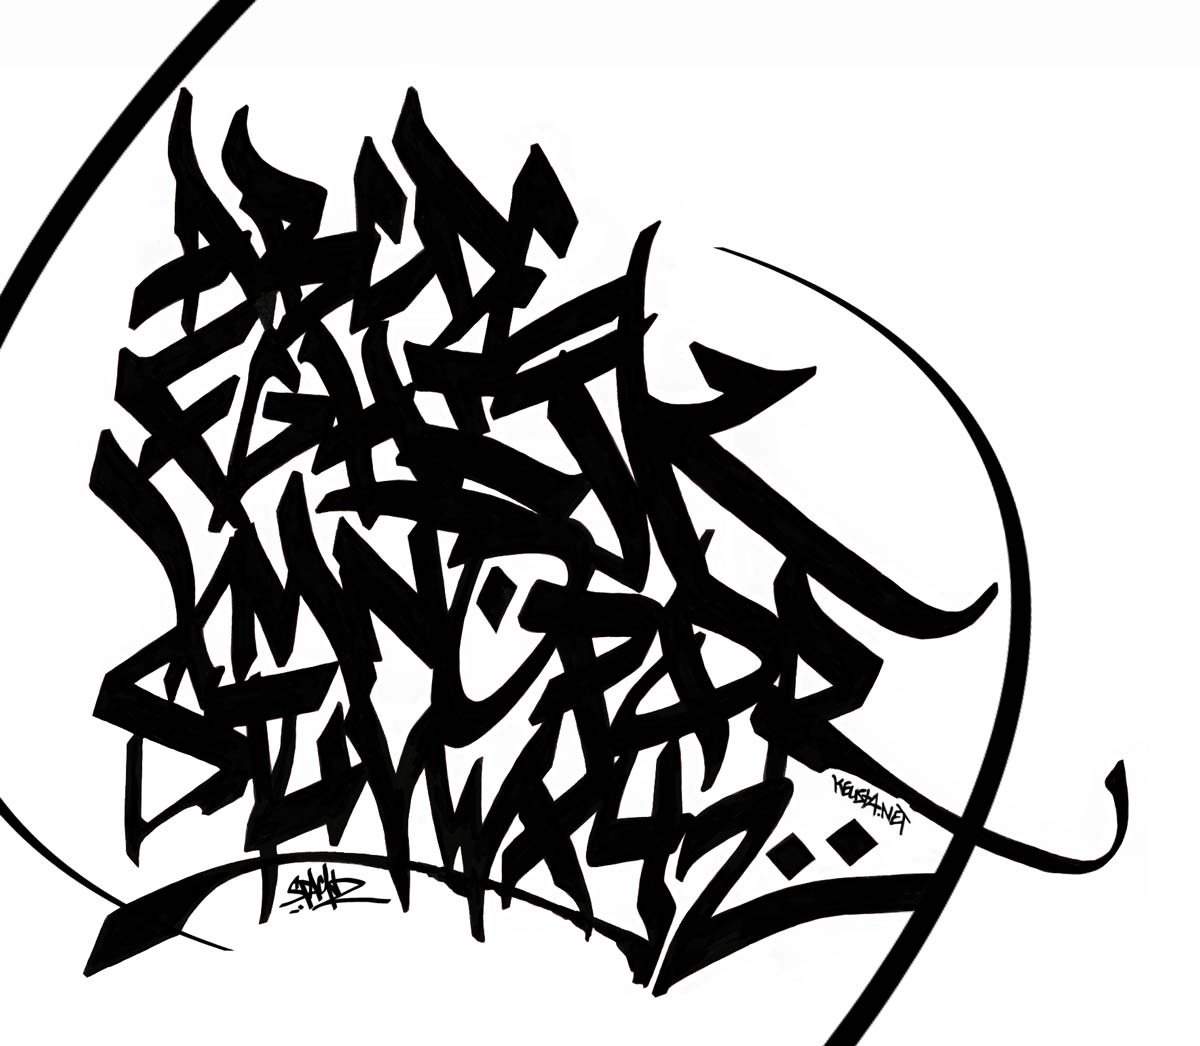 1000 images about urban calligraphy on pinterest graffiti graffiti alphabet and graffiti - Alphabet graffity ...